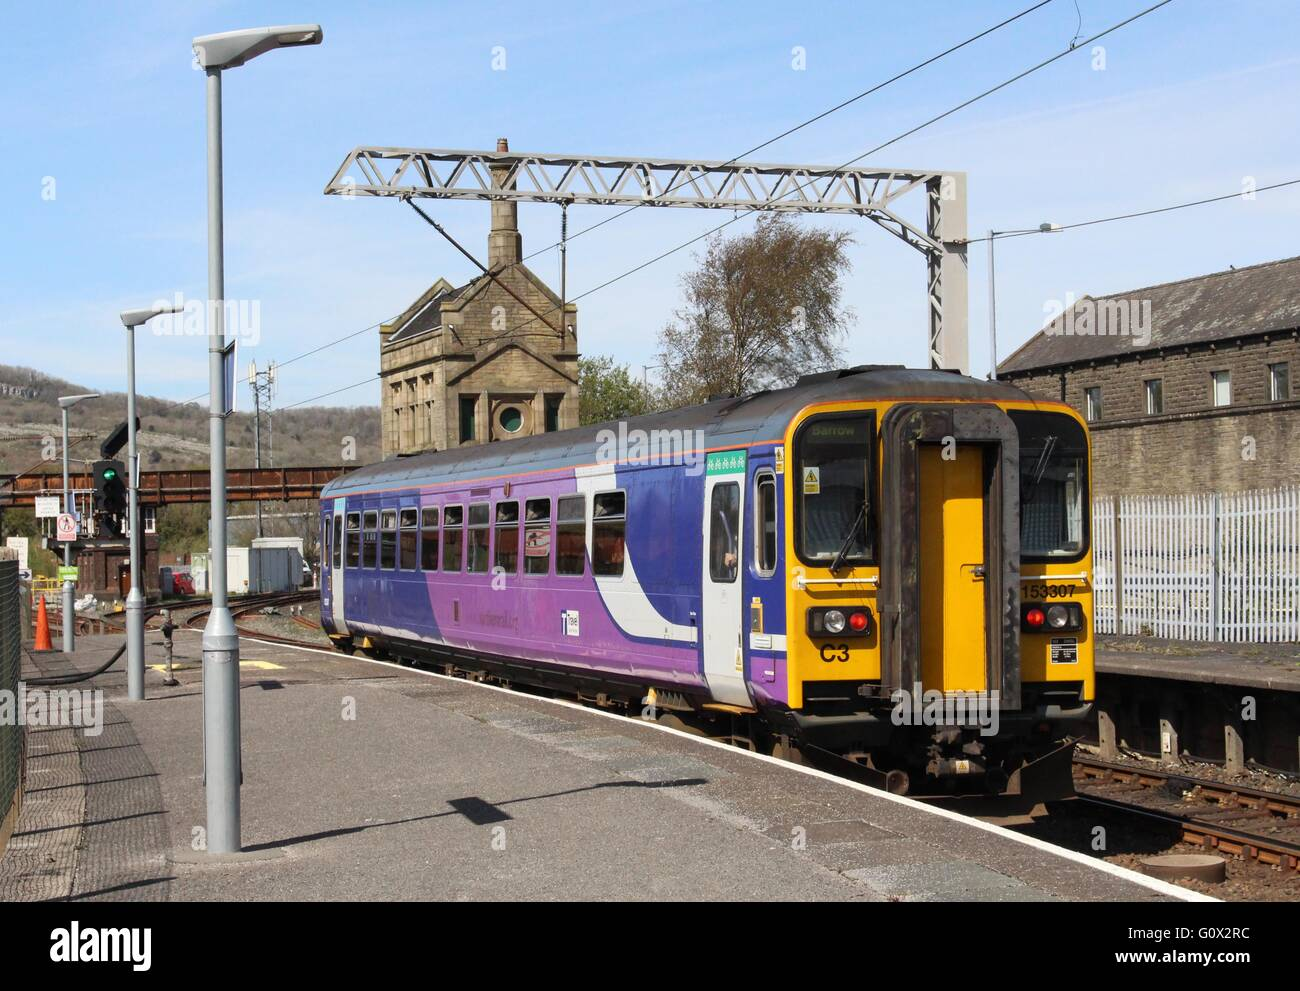 (Northern) class 153 diesel unit leaving Carnforth. Train  in Northern livery but with branding removed when franchise - Stock Image